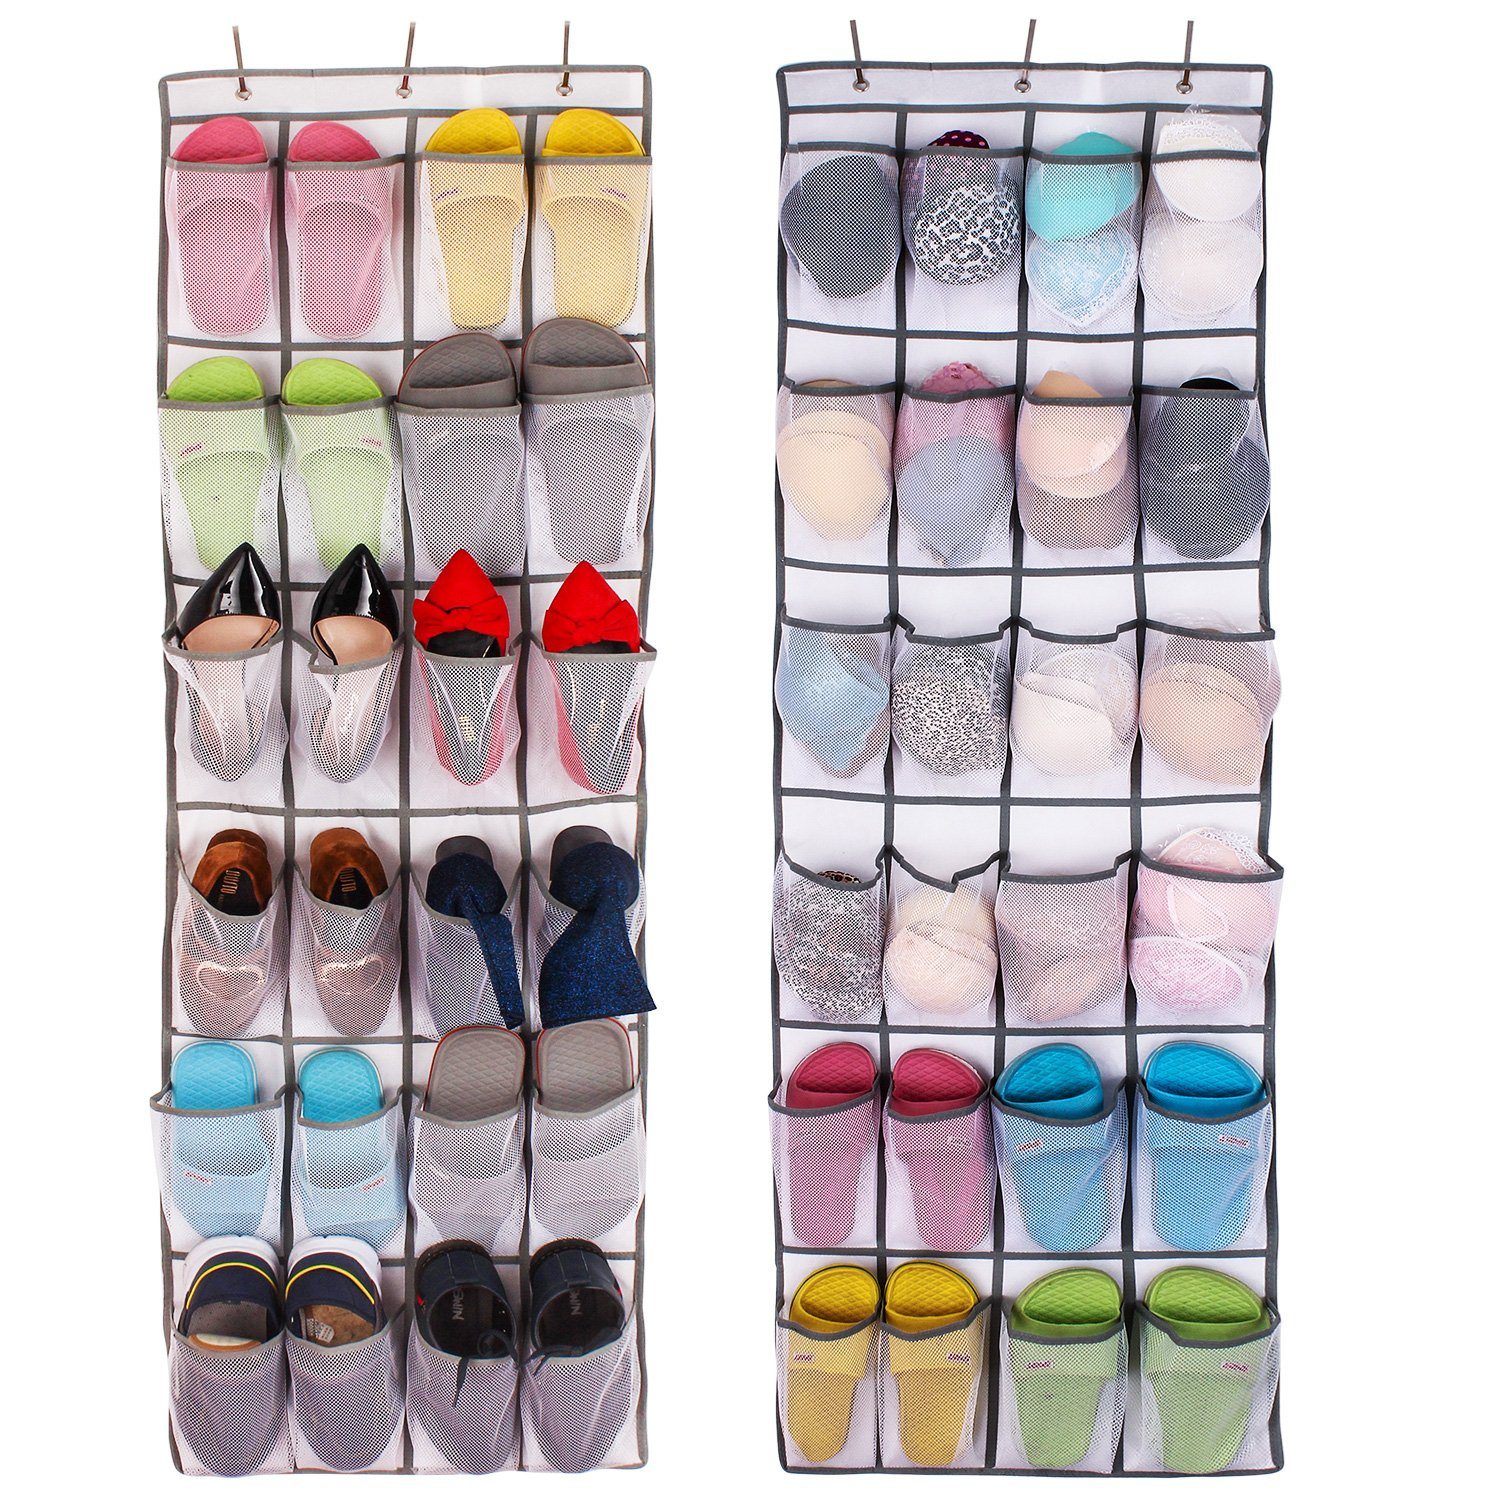 Colleer Shoe Organizer Over the Door 24 -Pocket Hanging Shoe Rack Door Shelf Hanger Holder Storage Bag JJSN0012BL